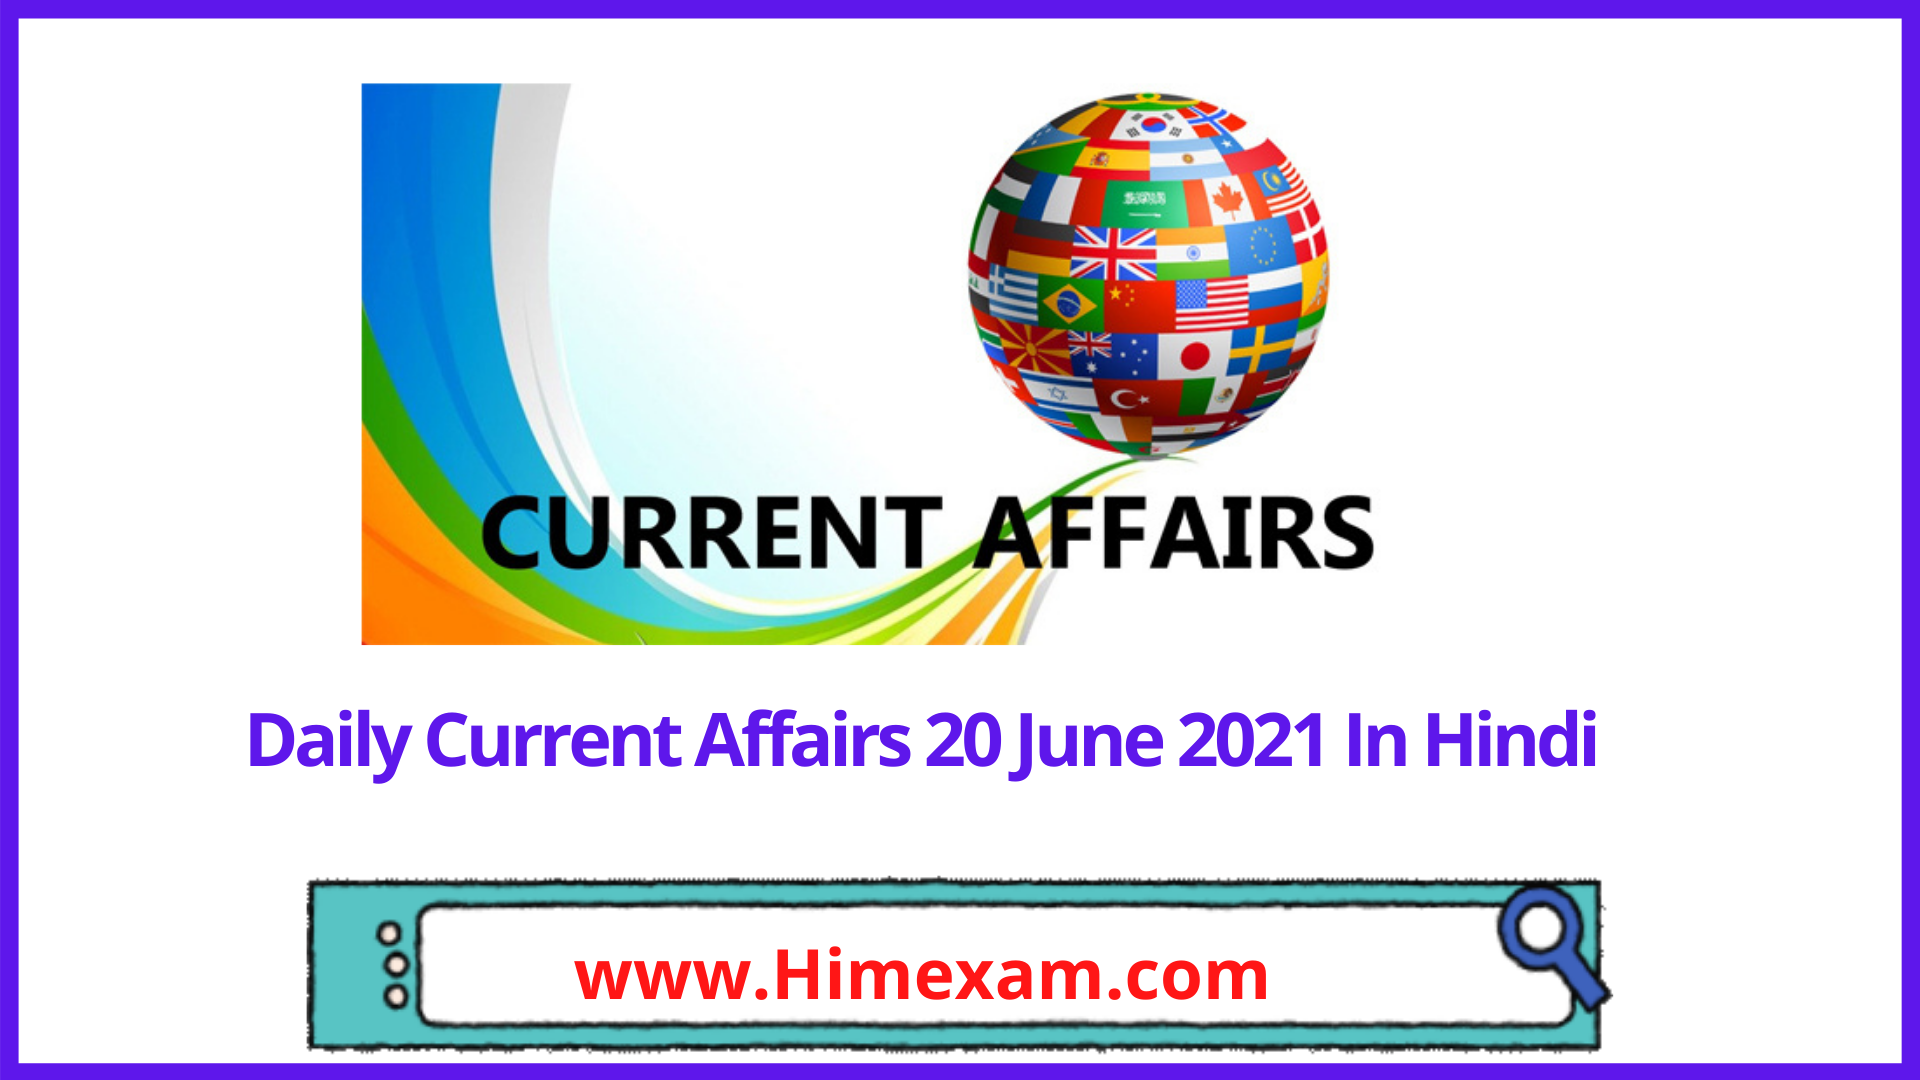 Daily Current Affairs 20 June 2021 In Hindi